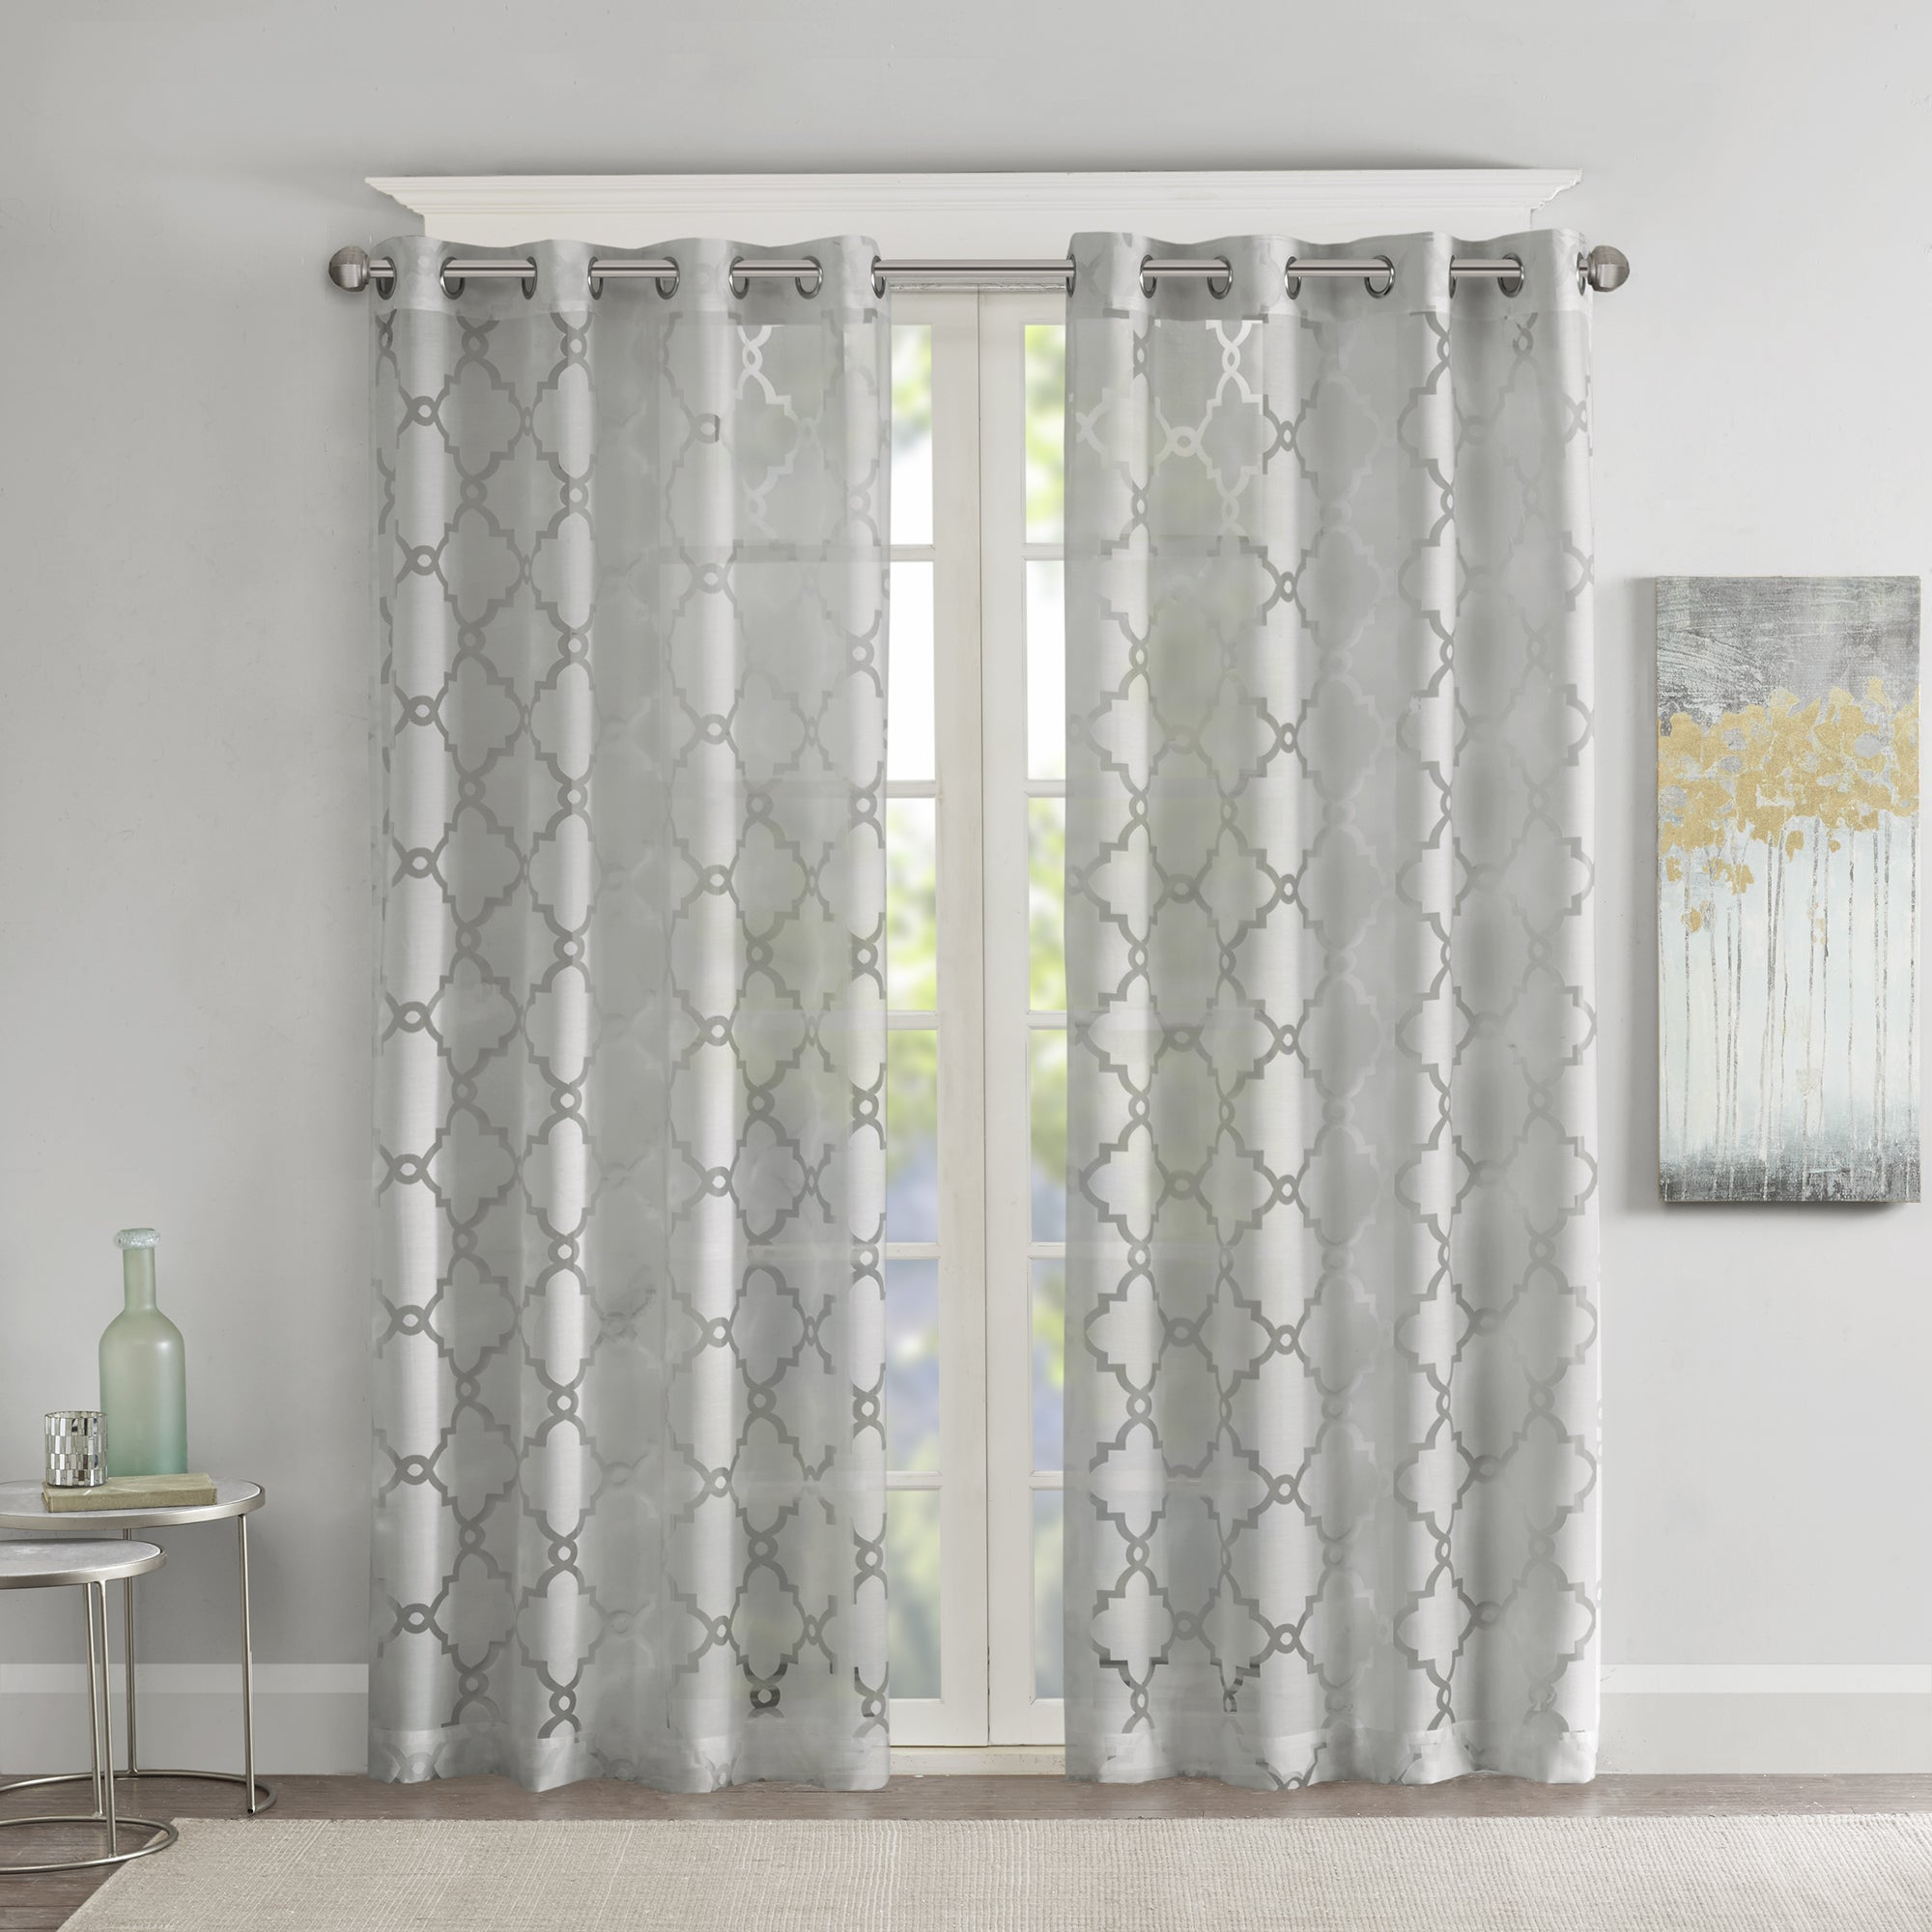 Latest Laya Fretwork Burnout Sheer Curtain Panels In Madison Park Laya Fretwork Burnout Sheer Curtain Panel (View 3 of 20)